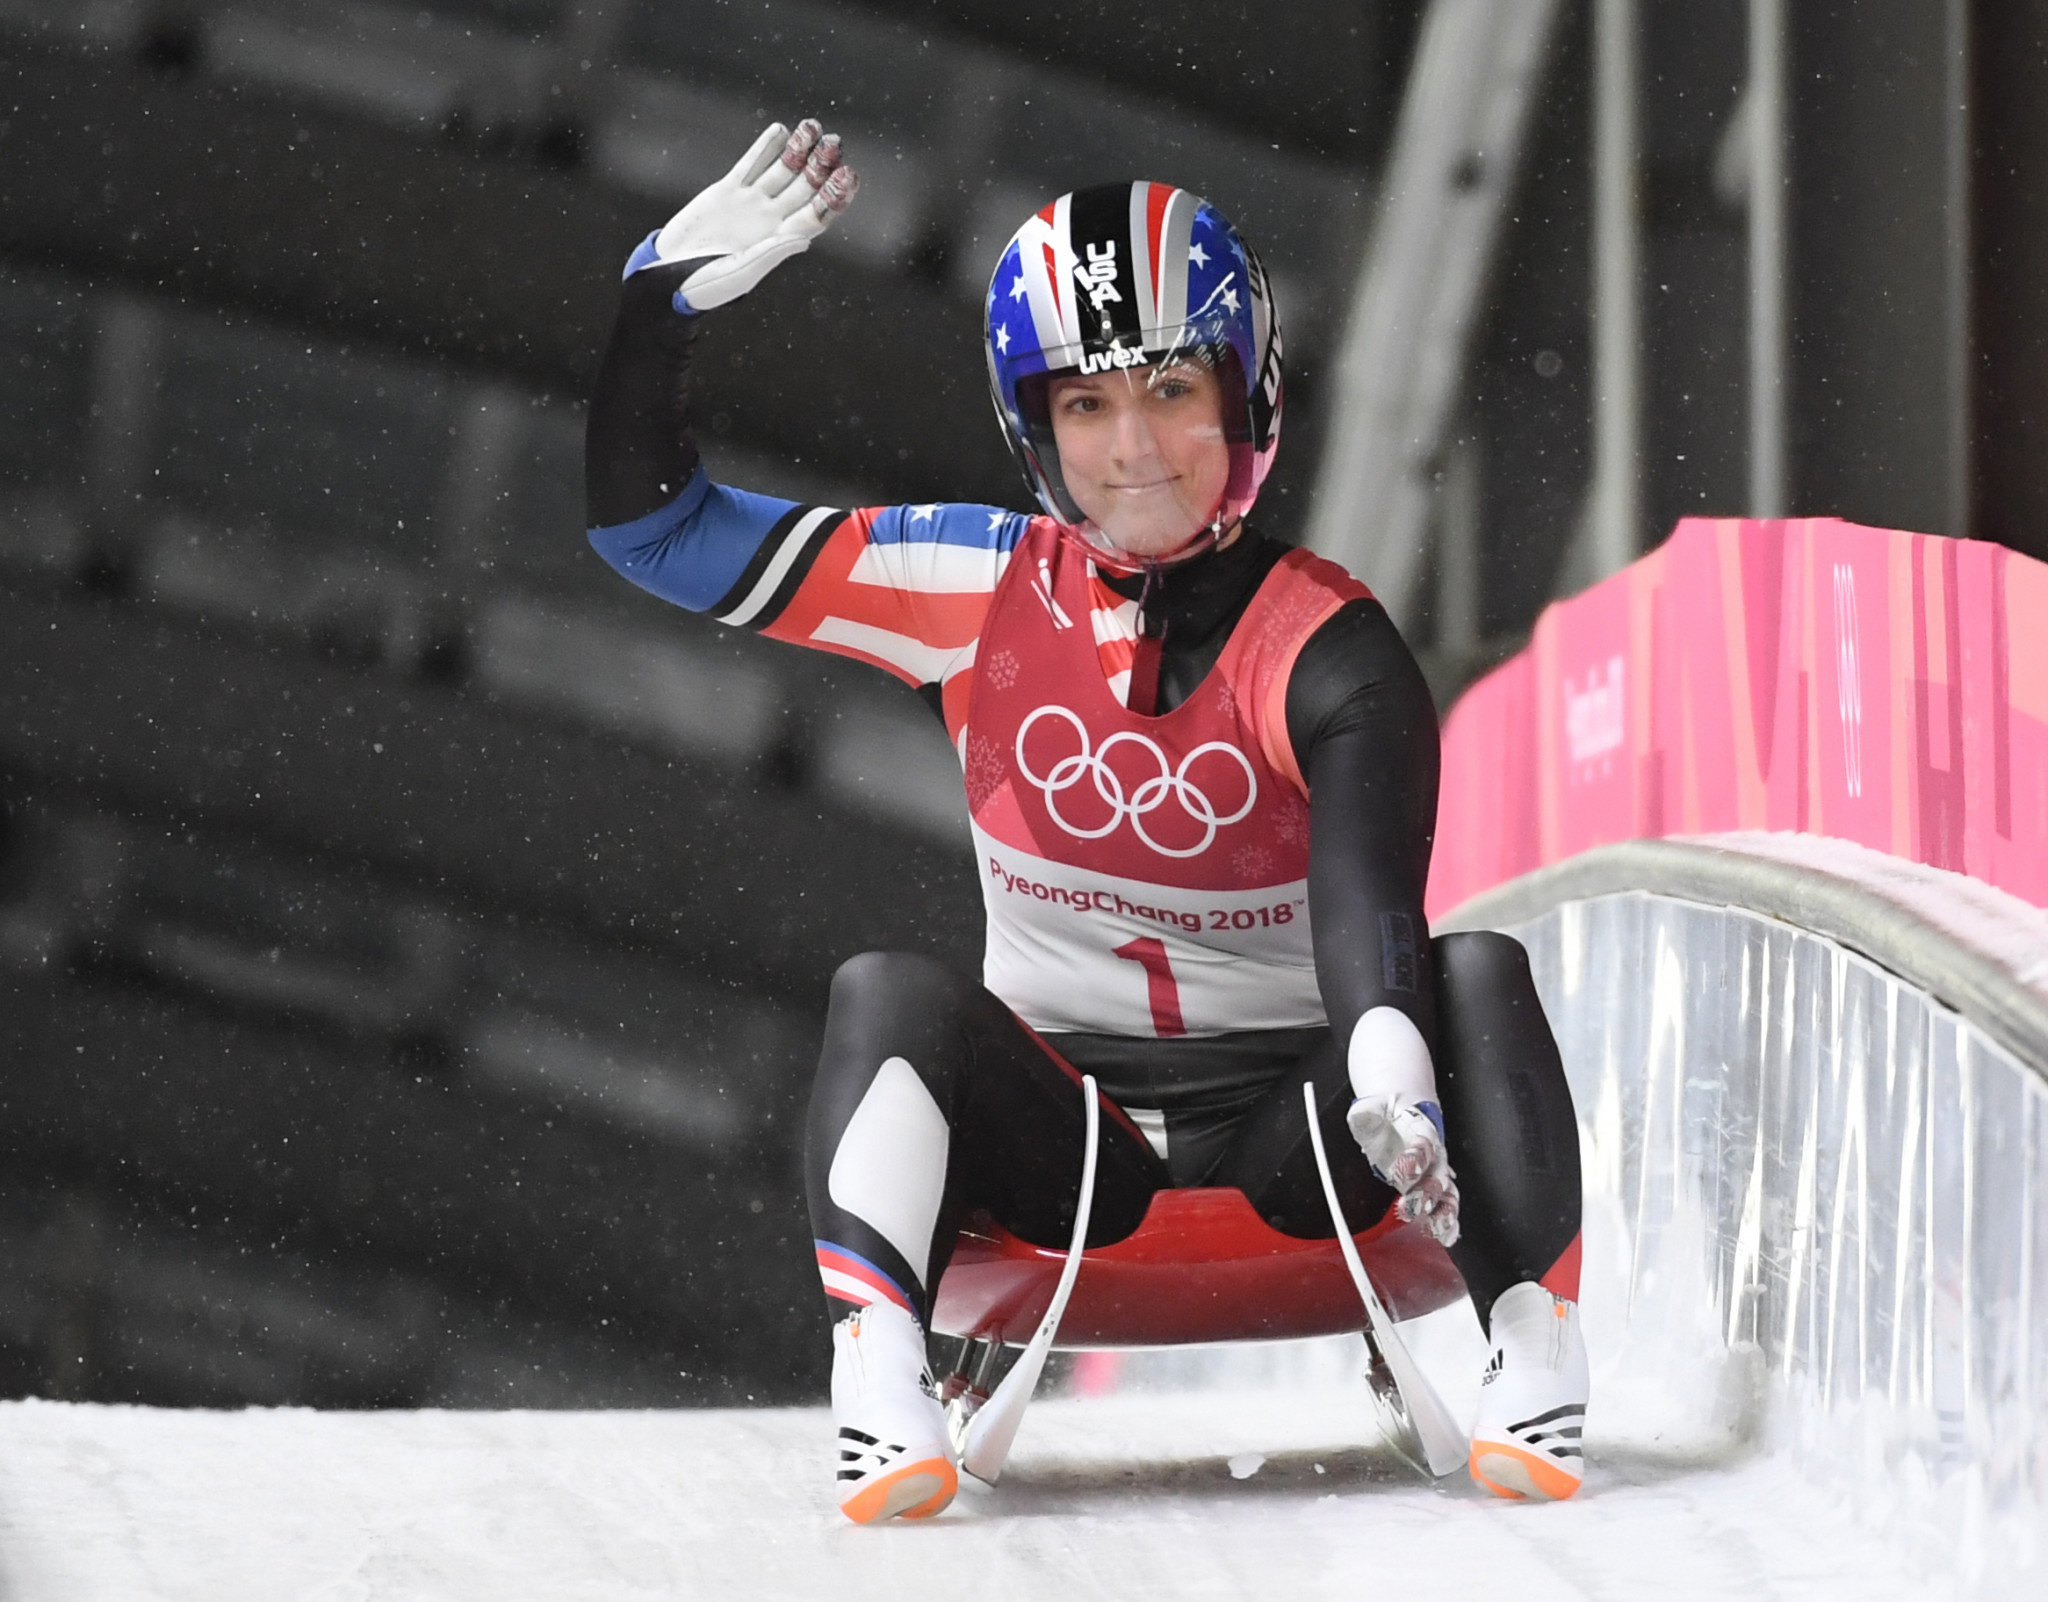 Two-time world champion and Olympic bronze medallist Erin Hamlin is expected to make an appearance at the event in Utica ©Getty Images